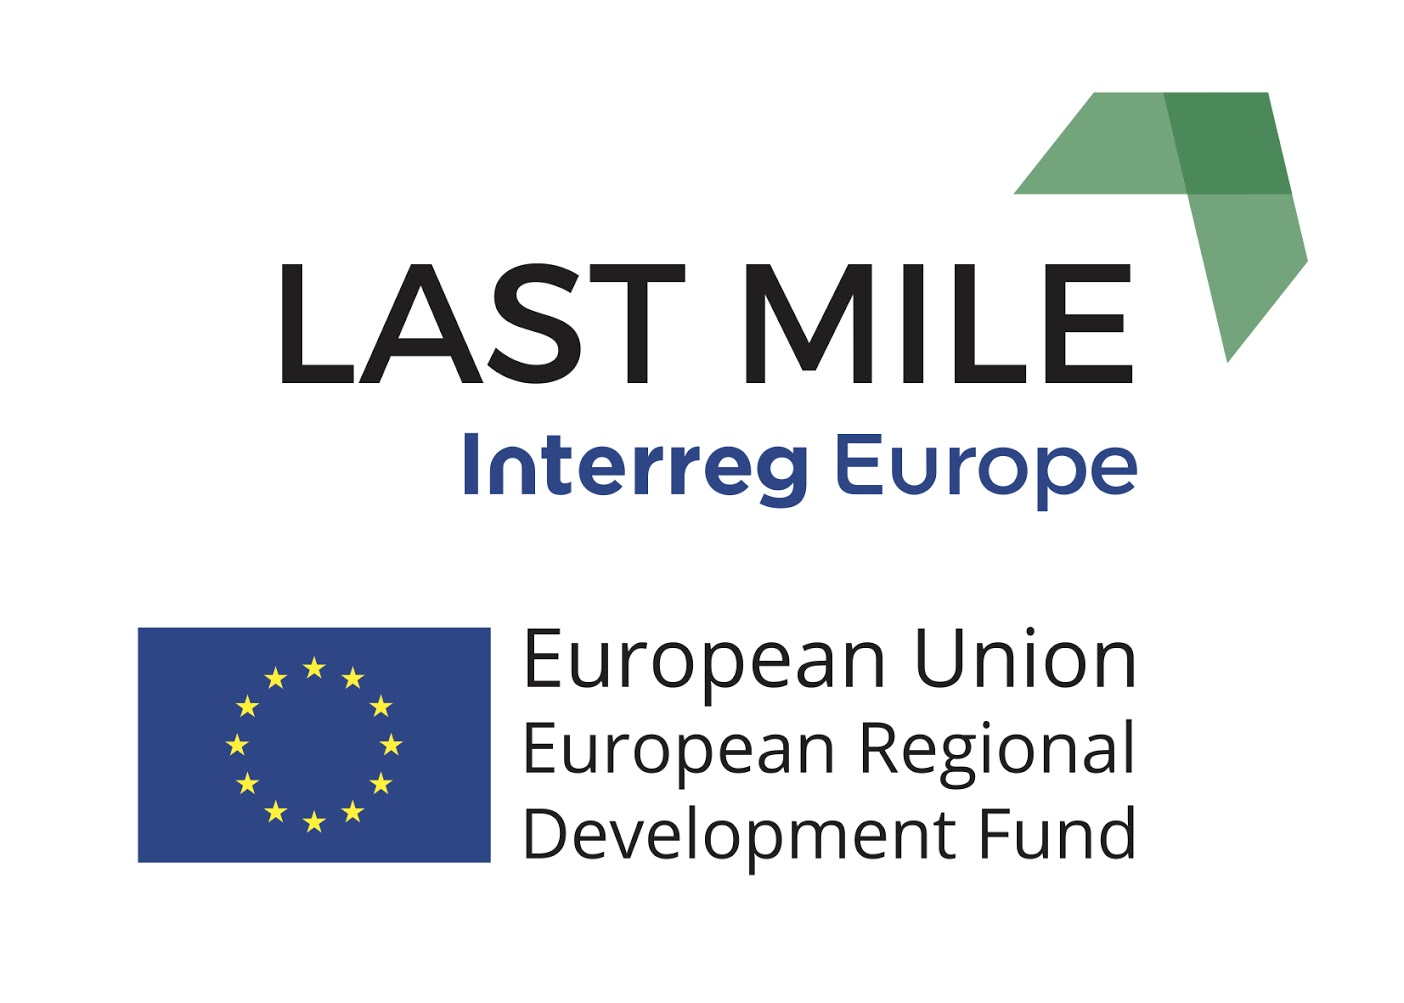 LAST MILE EU FLAG